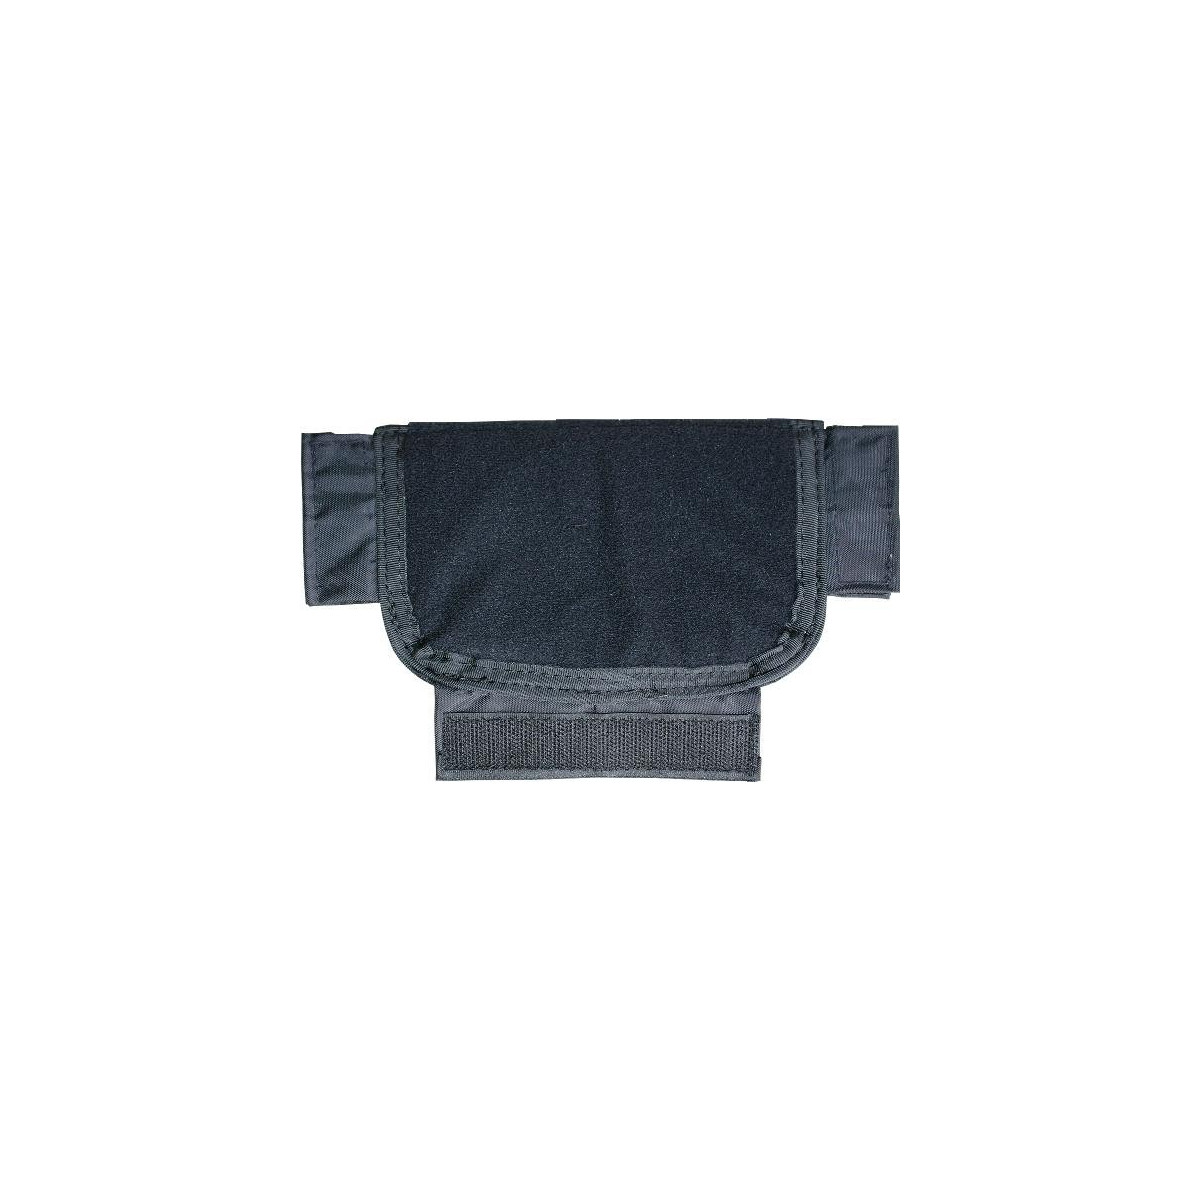 Inner Compartment Divider 1610